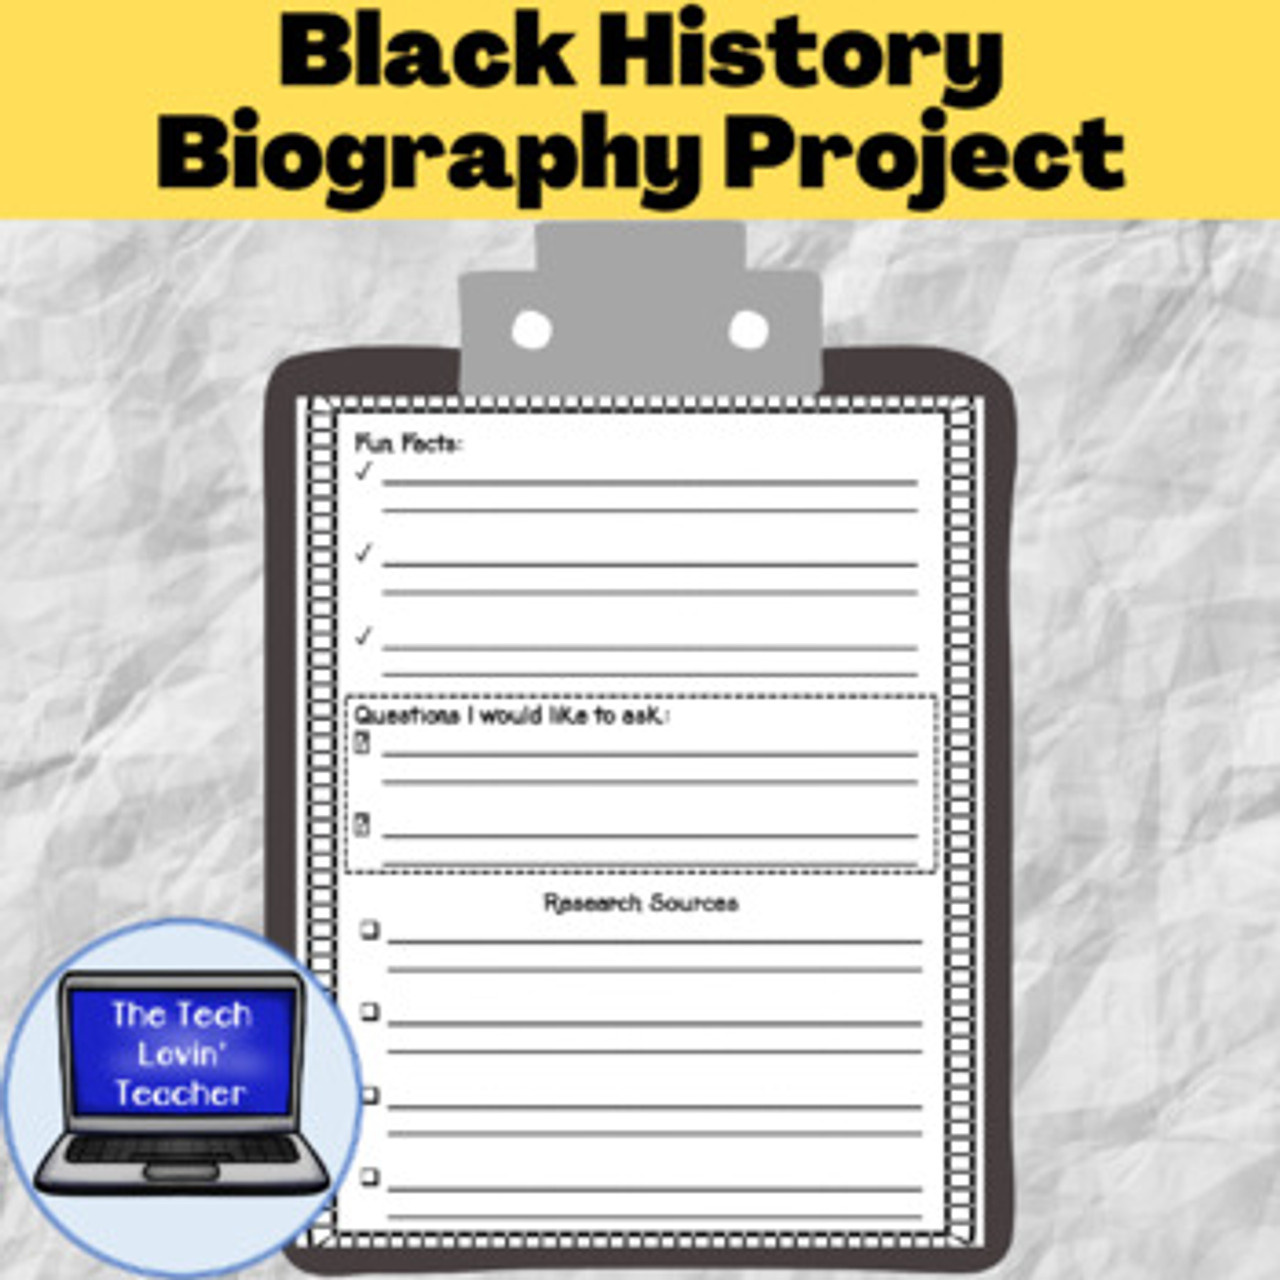 Black History Biographies Project-Civil Rights (Women)